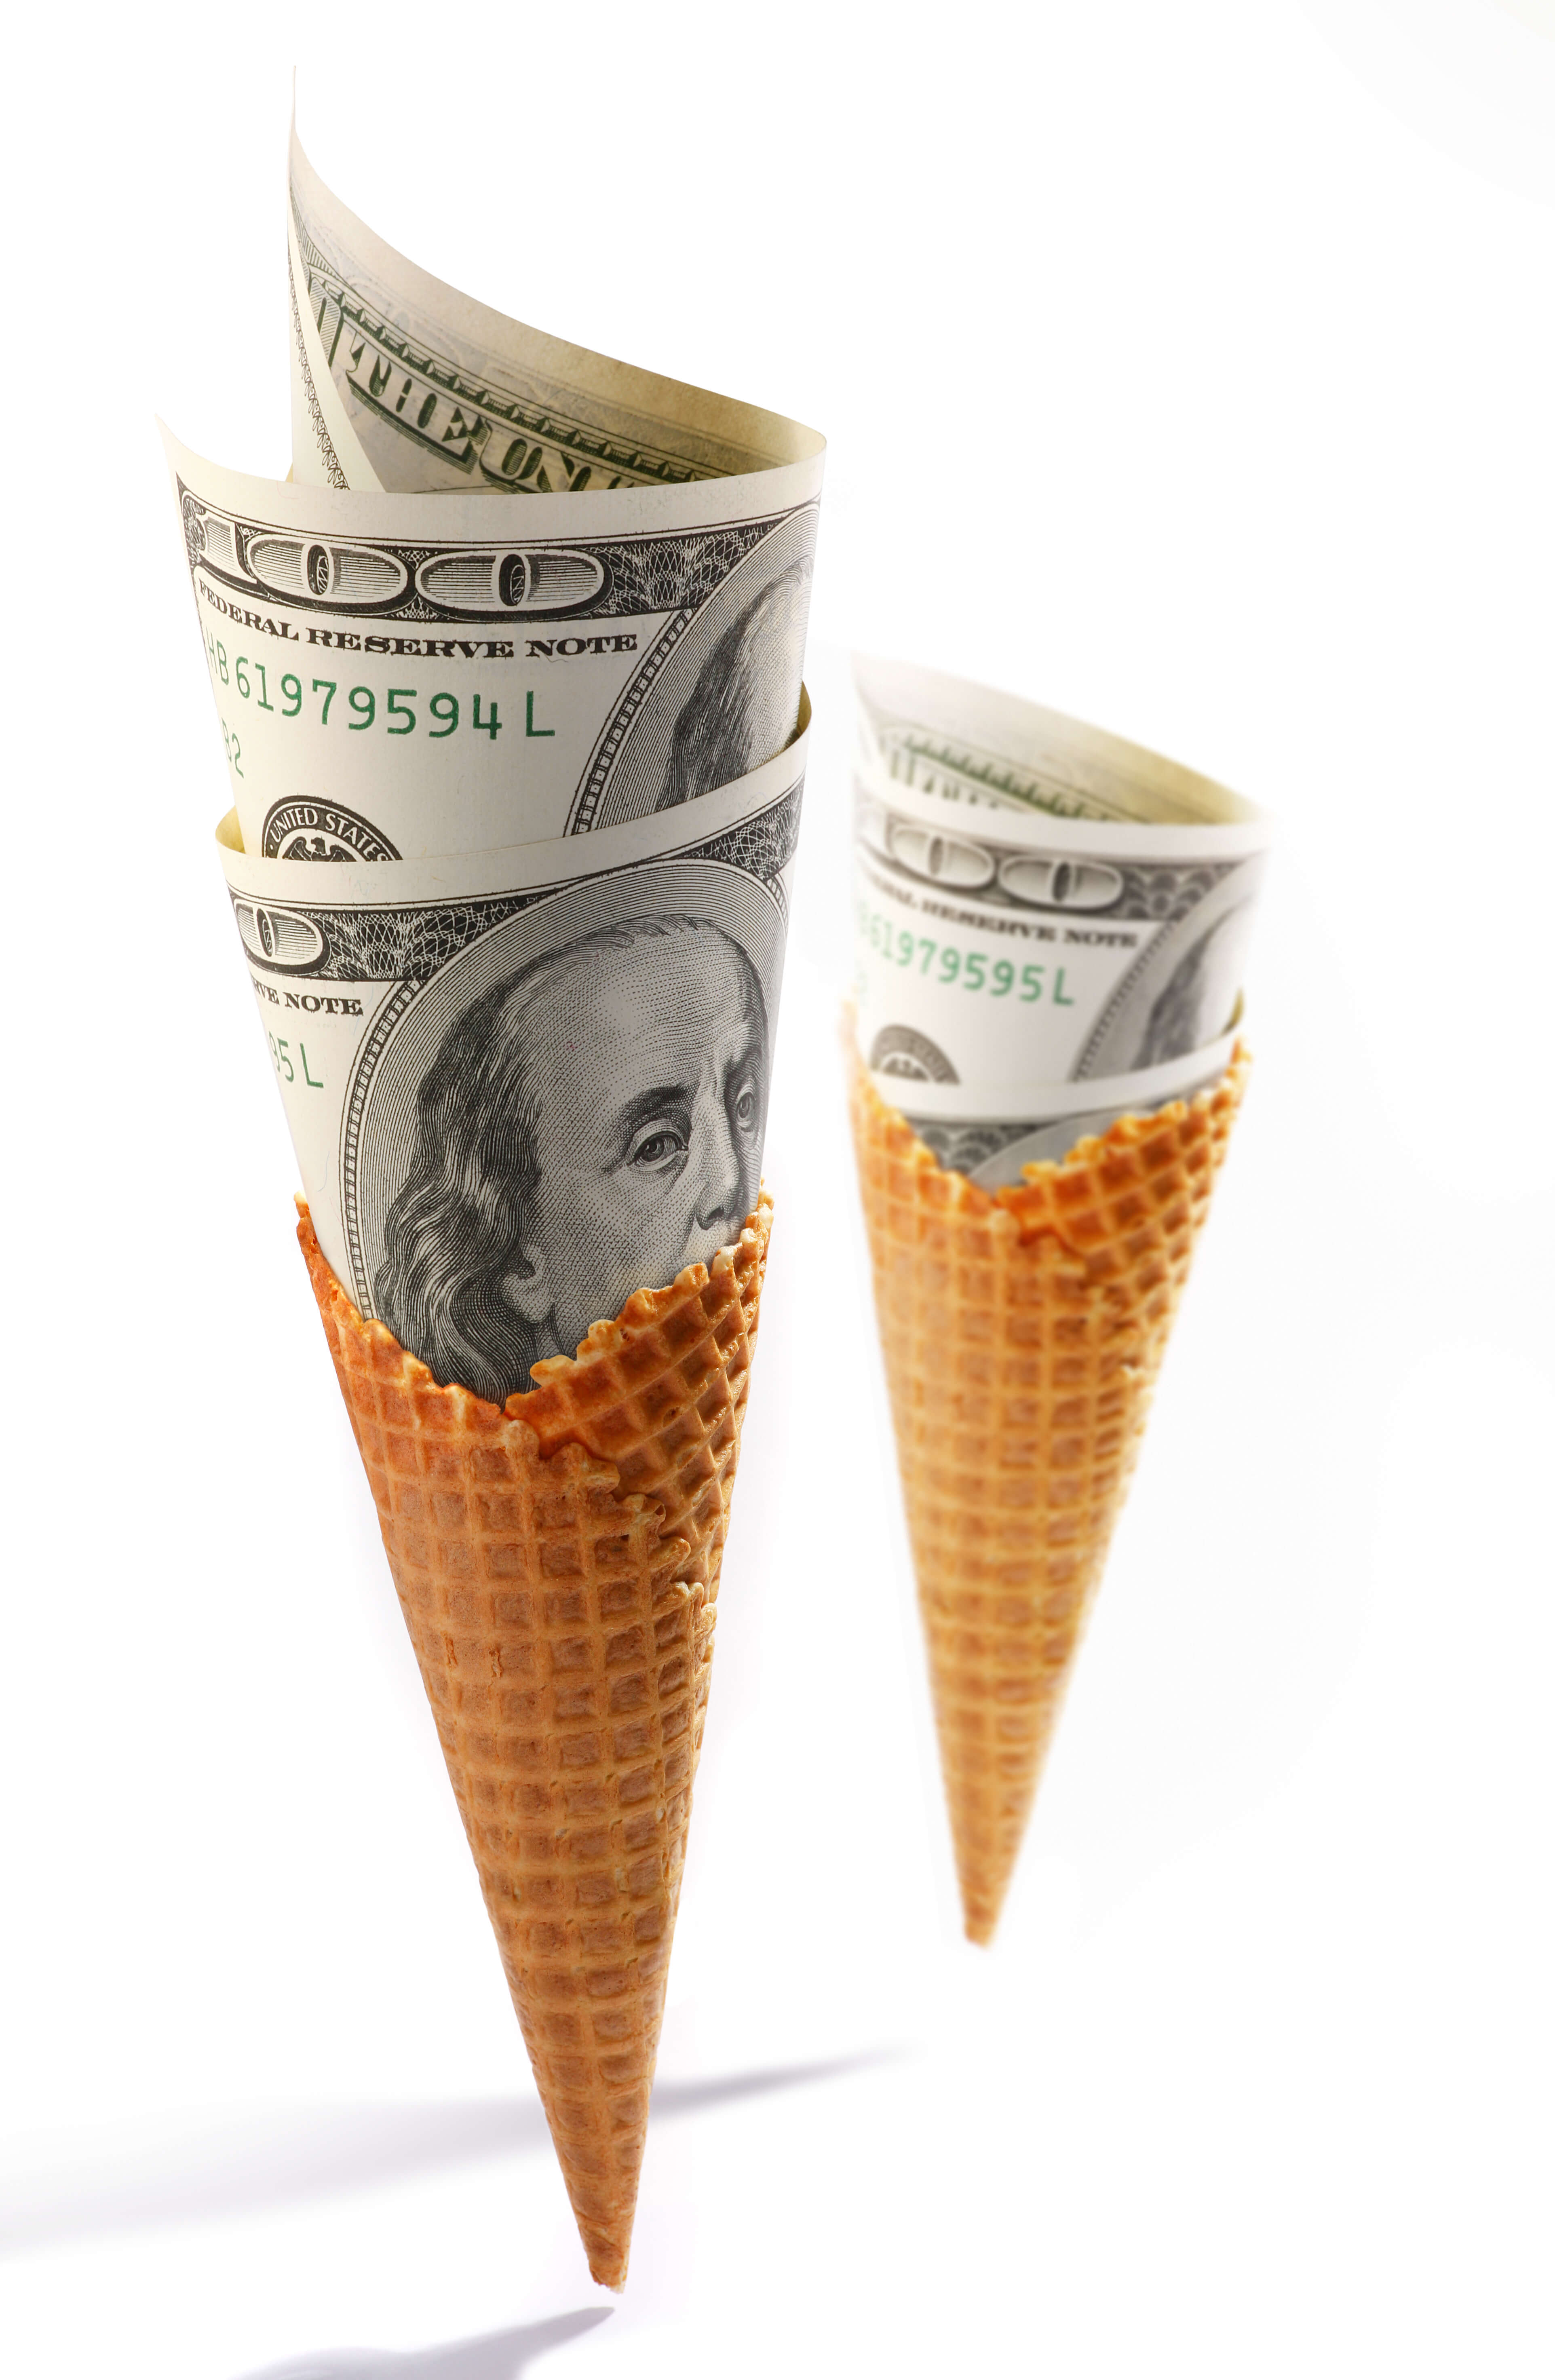 ICE-CREAM-MONEY